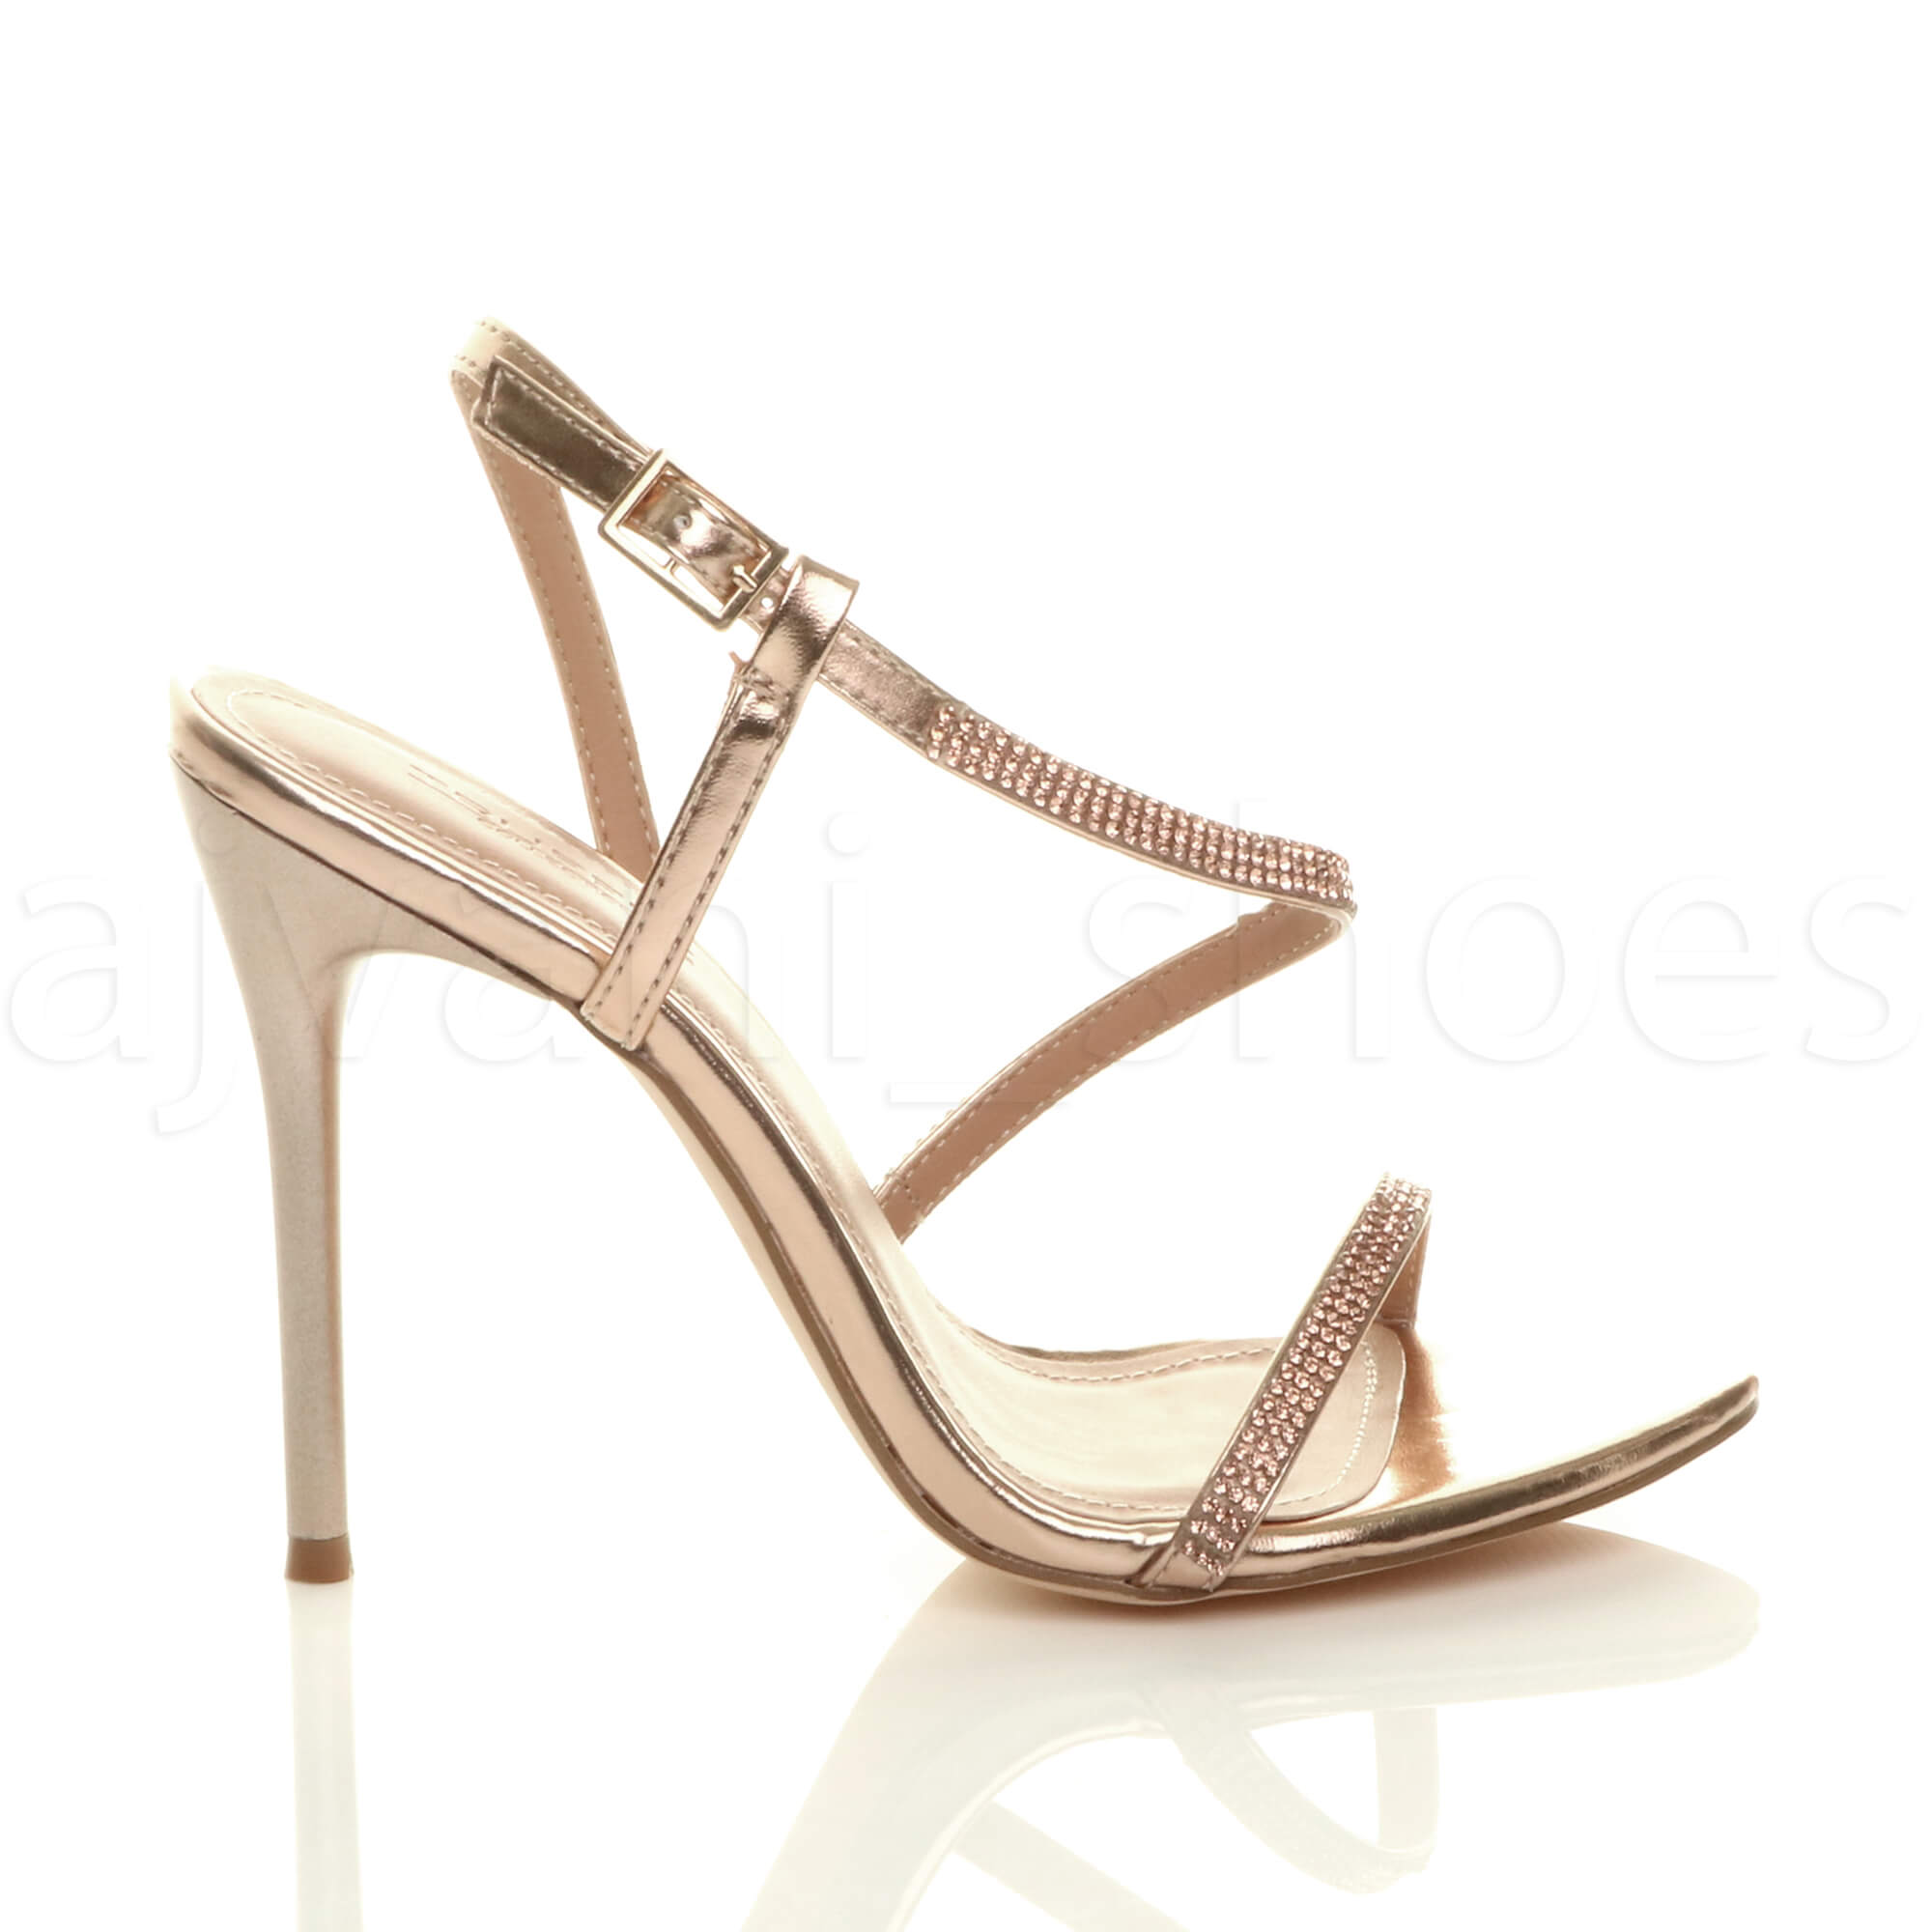 WOMENS-LADIES-HIGH-HEEL-DIAMANTE-BARELY-THERE-STRAPPY-EVENING-SANDALS-SIZE thumbnail 11